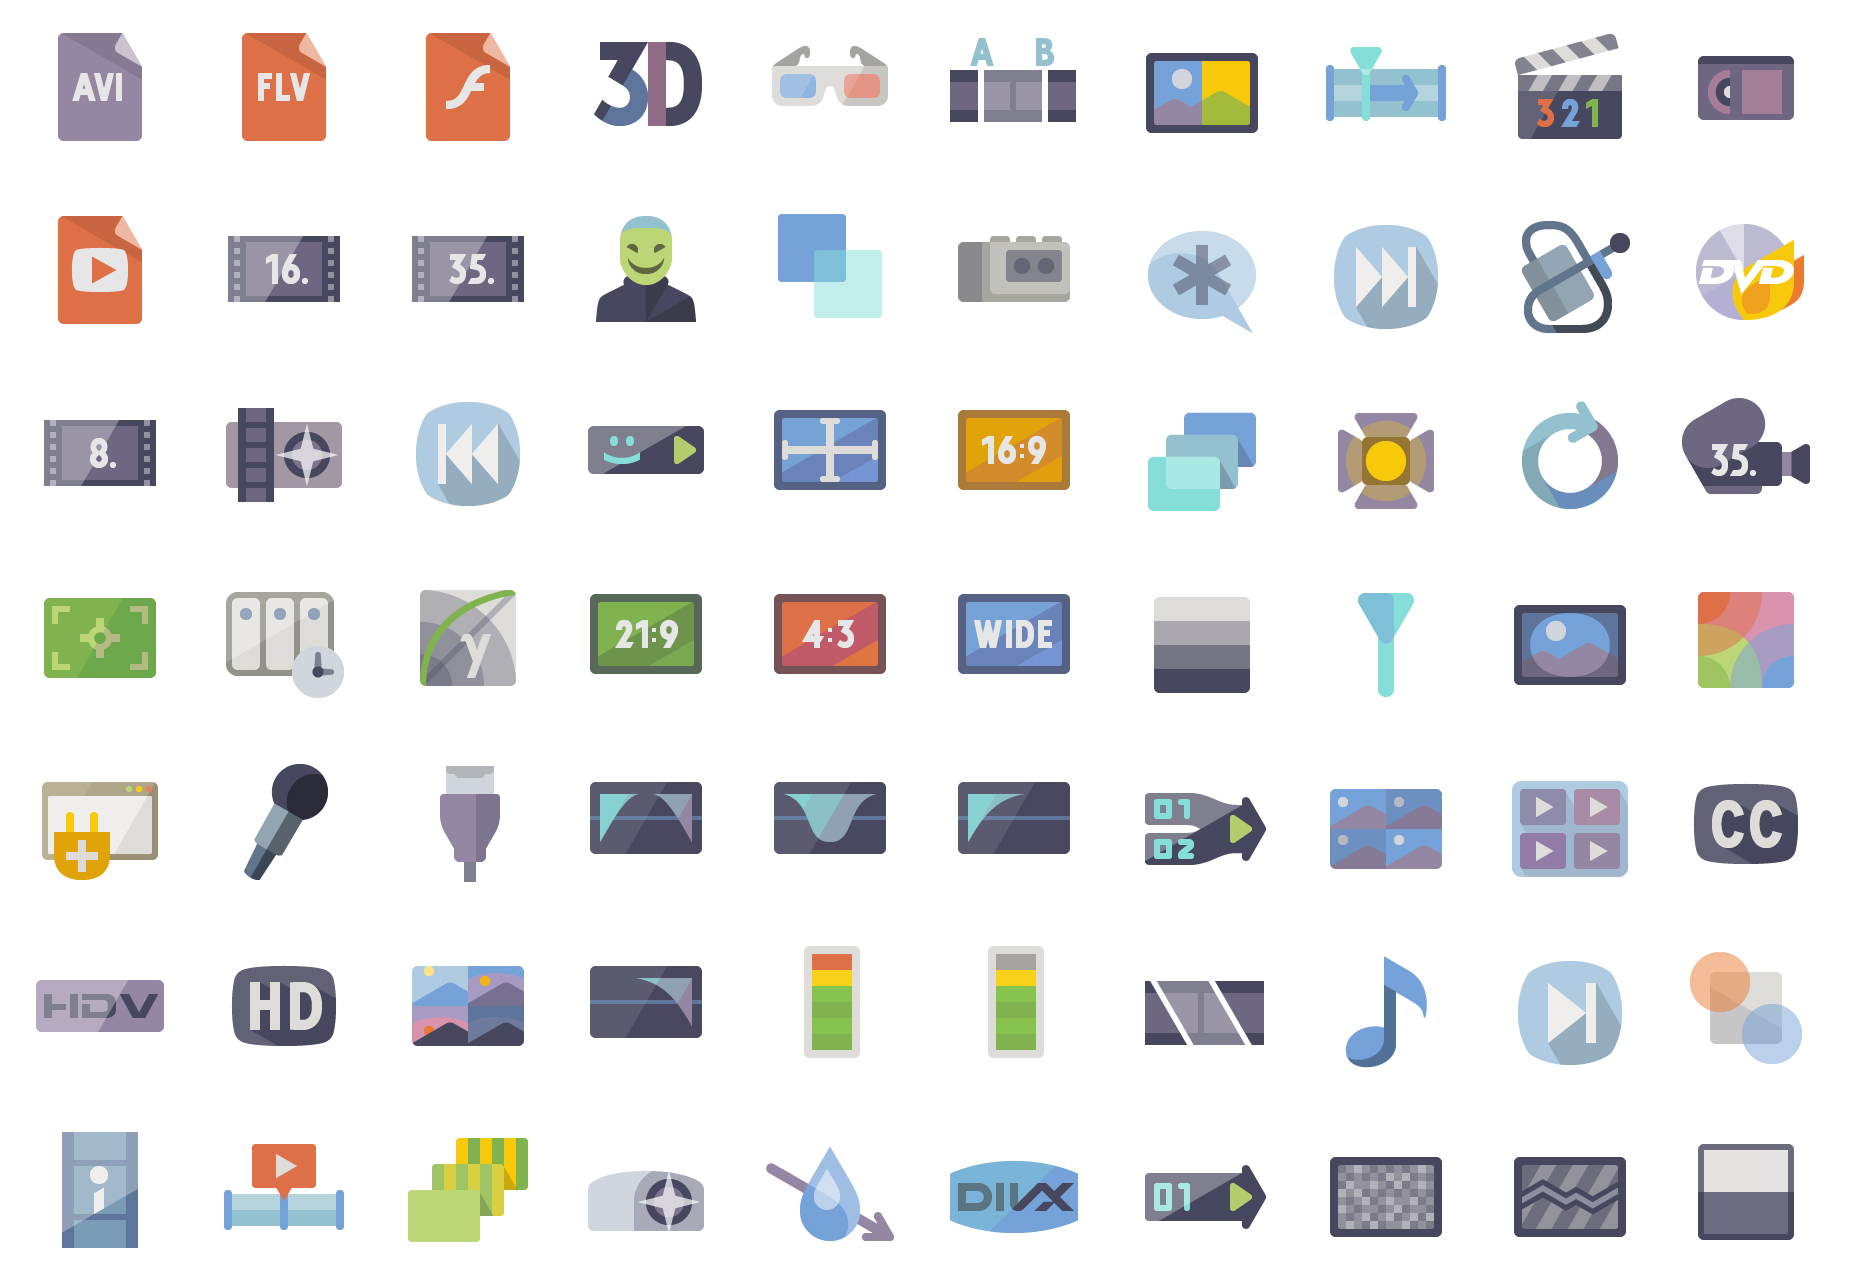 5k-video-production-flat-vector-icons